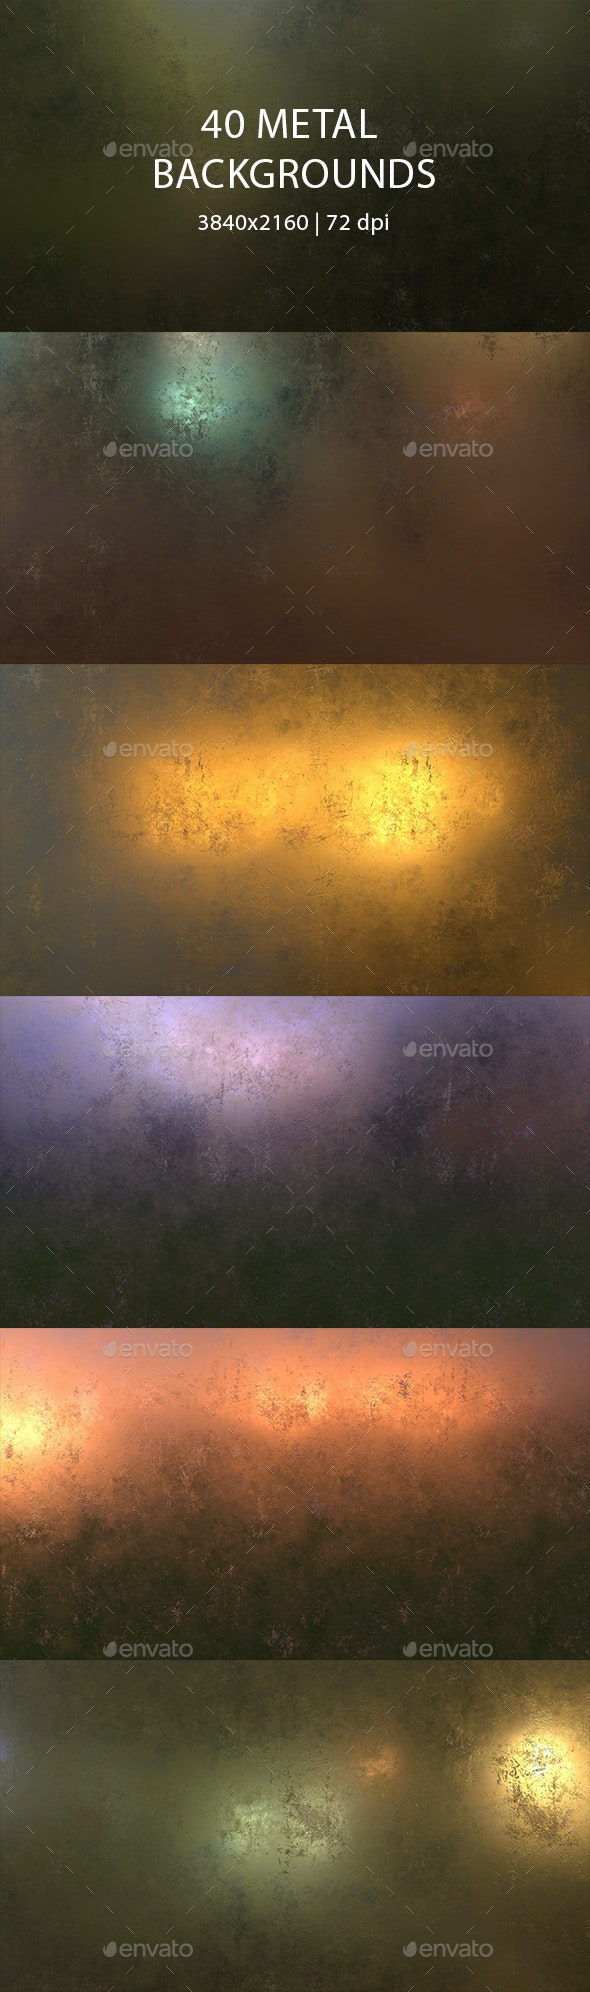 40 Metal Backgrounds - Urban Backgrounds